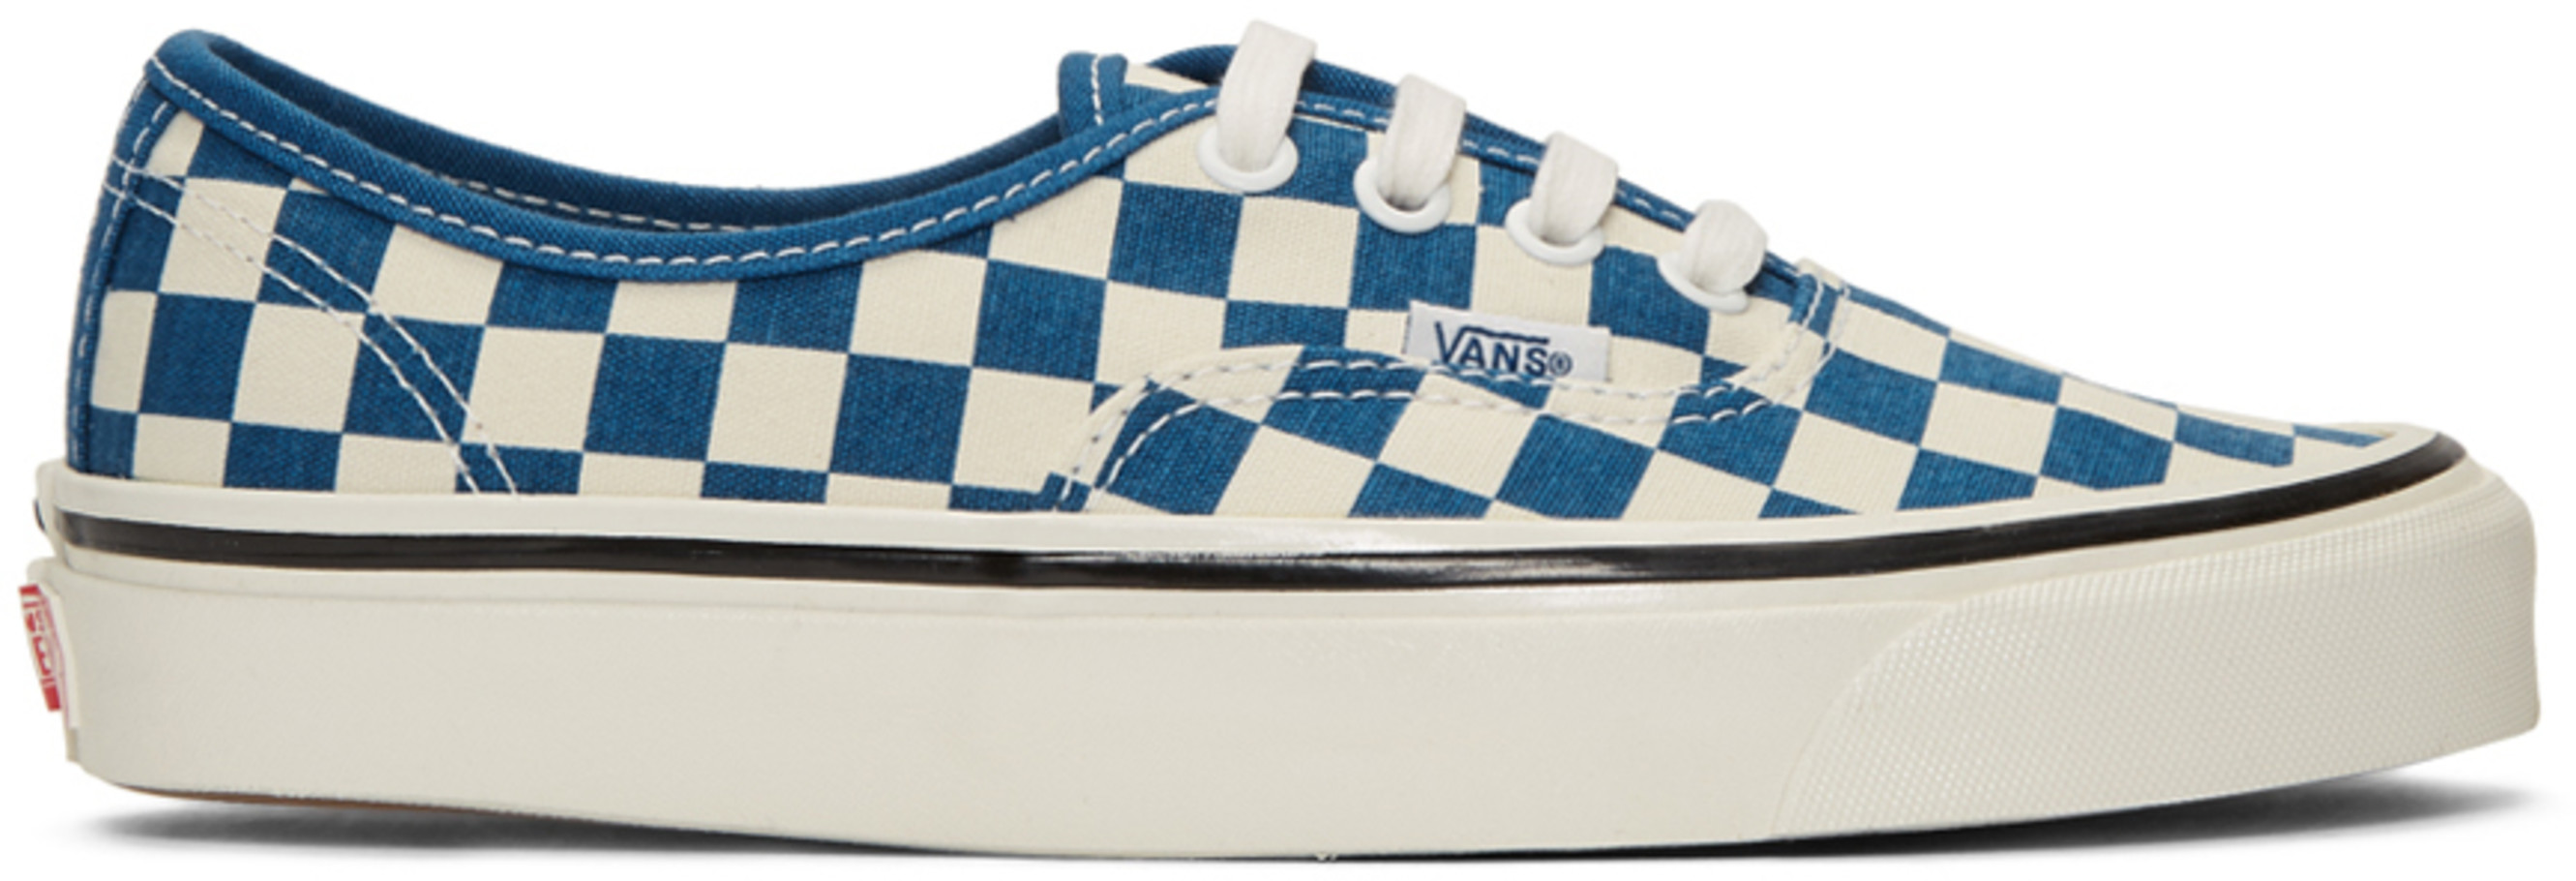 9bd90bbb7a Vans for Men SS19 Collection